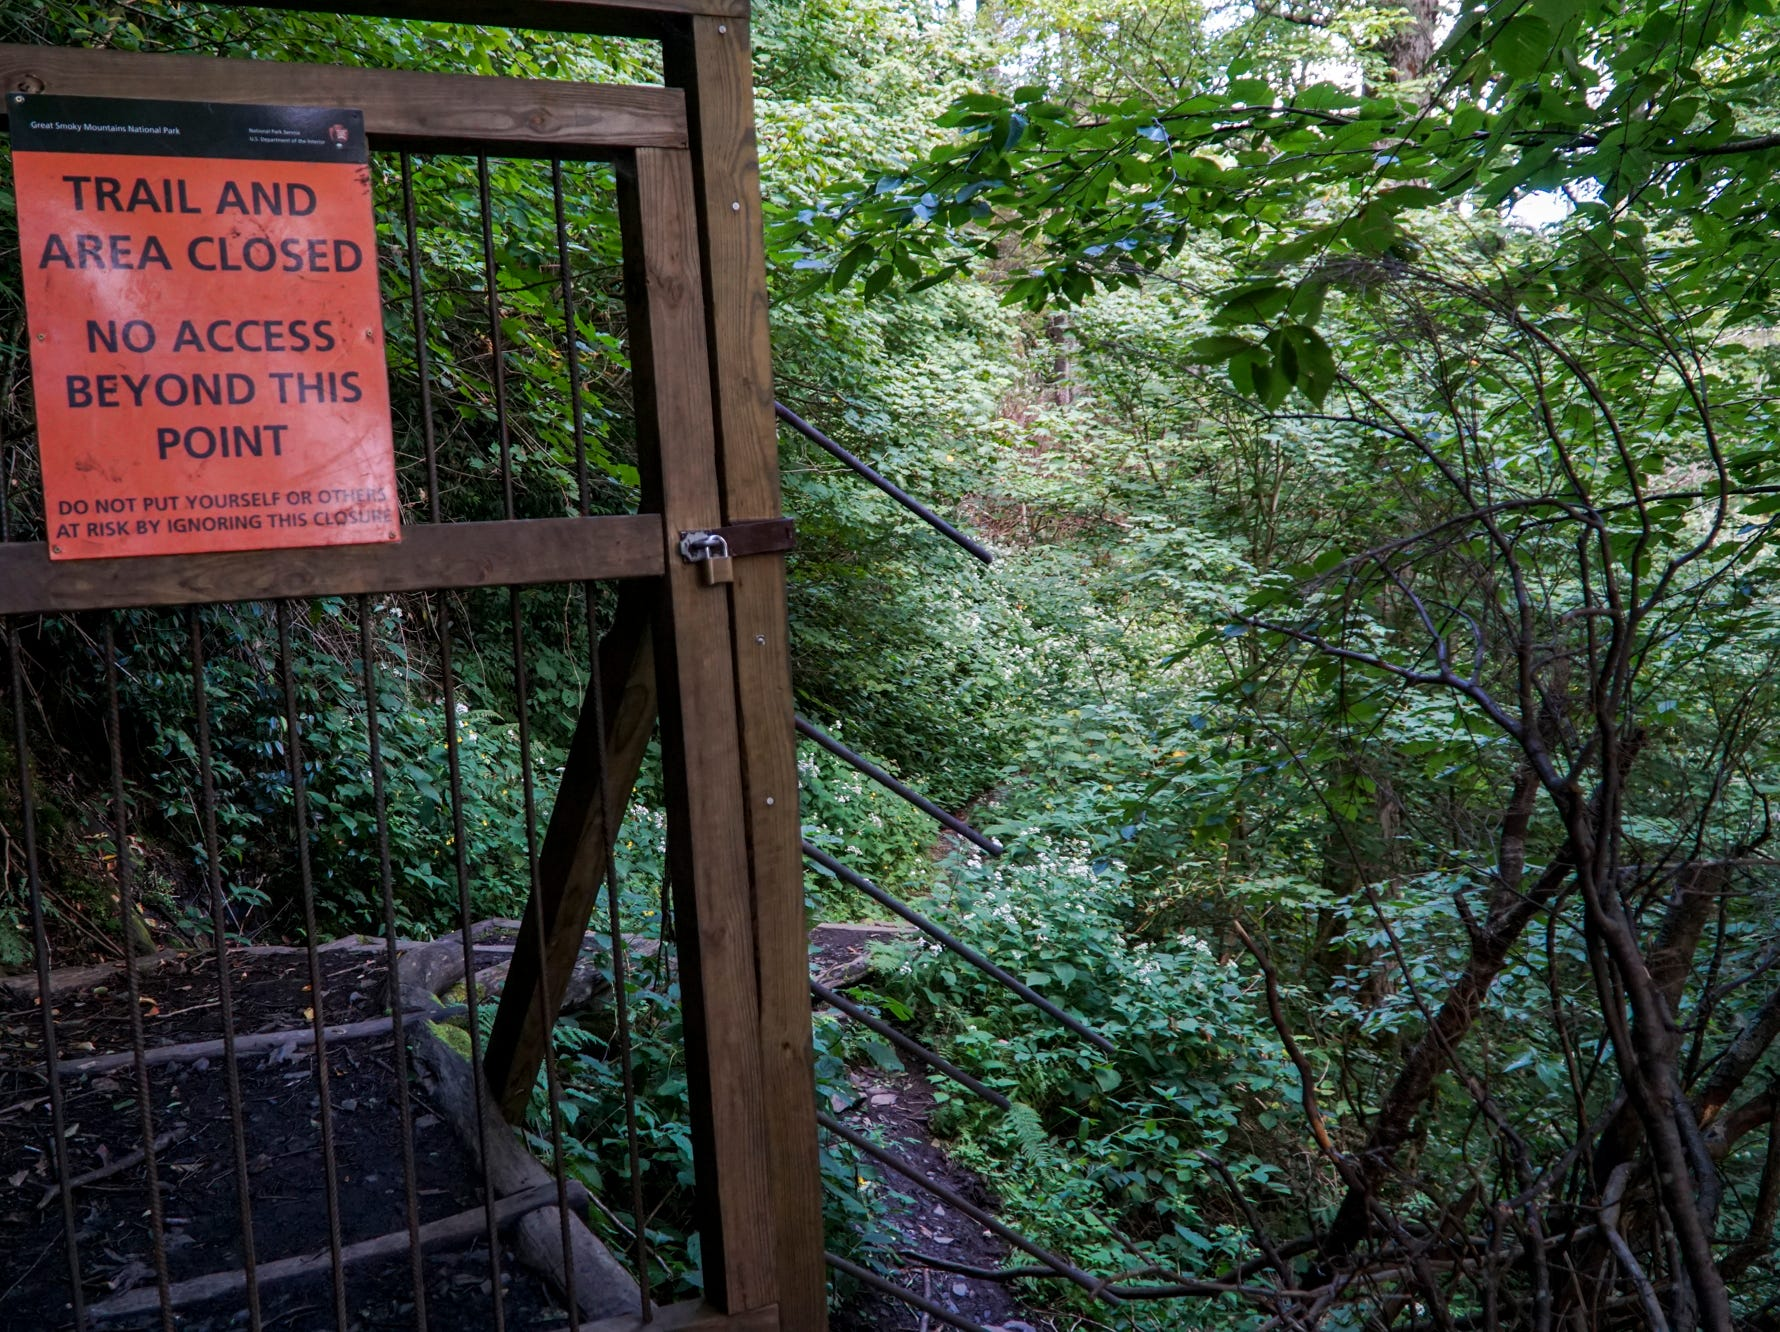 A wood and metal gate prevents hikers from accessing the previous peak of the Chimney Tops trail which was damaged by the Chimney Tops 2 fire in 2016.